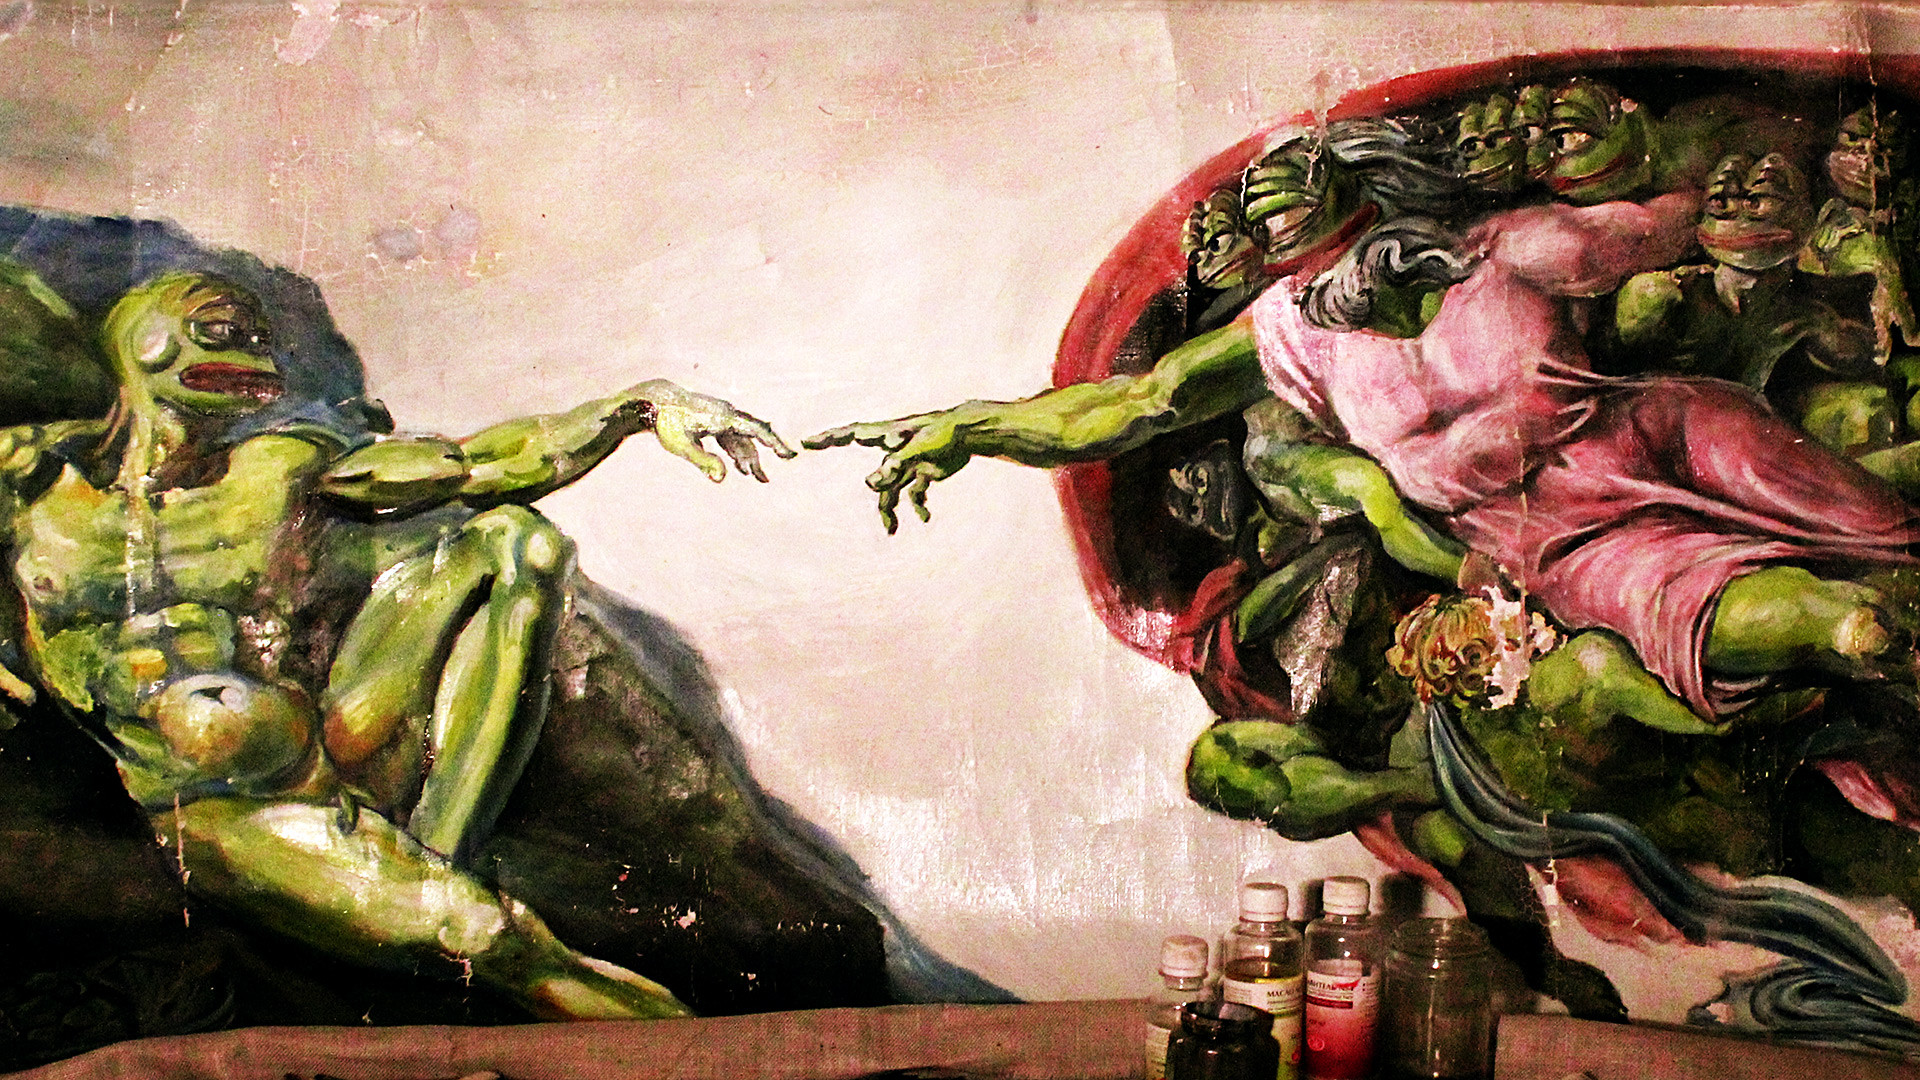 The Creation of Pepe by Olga Vishnevsky (based on Michelangelo's The Creation of Adam).